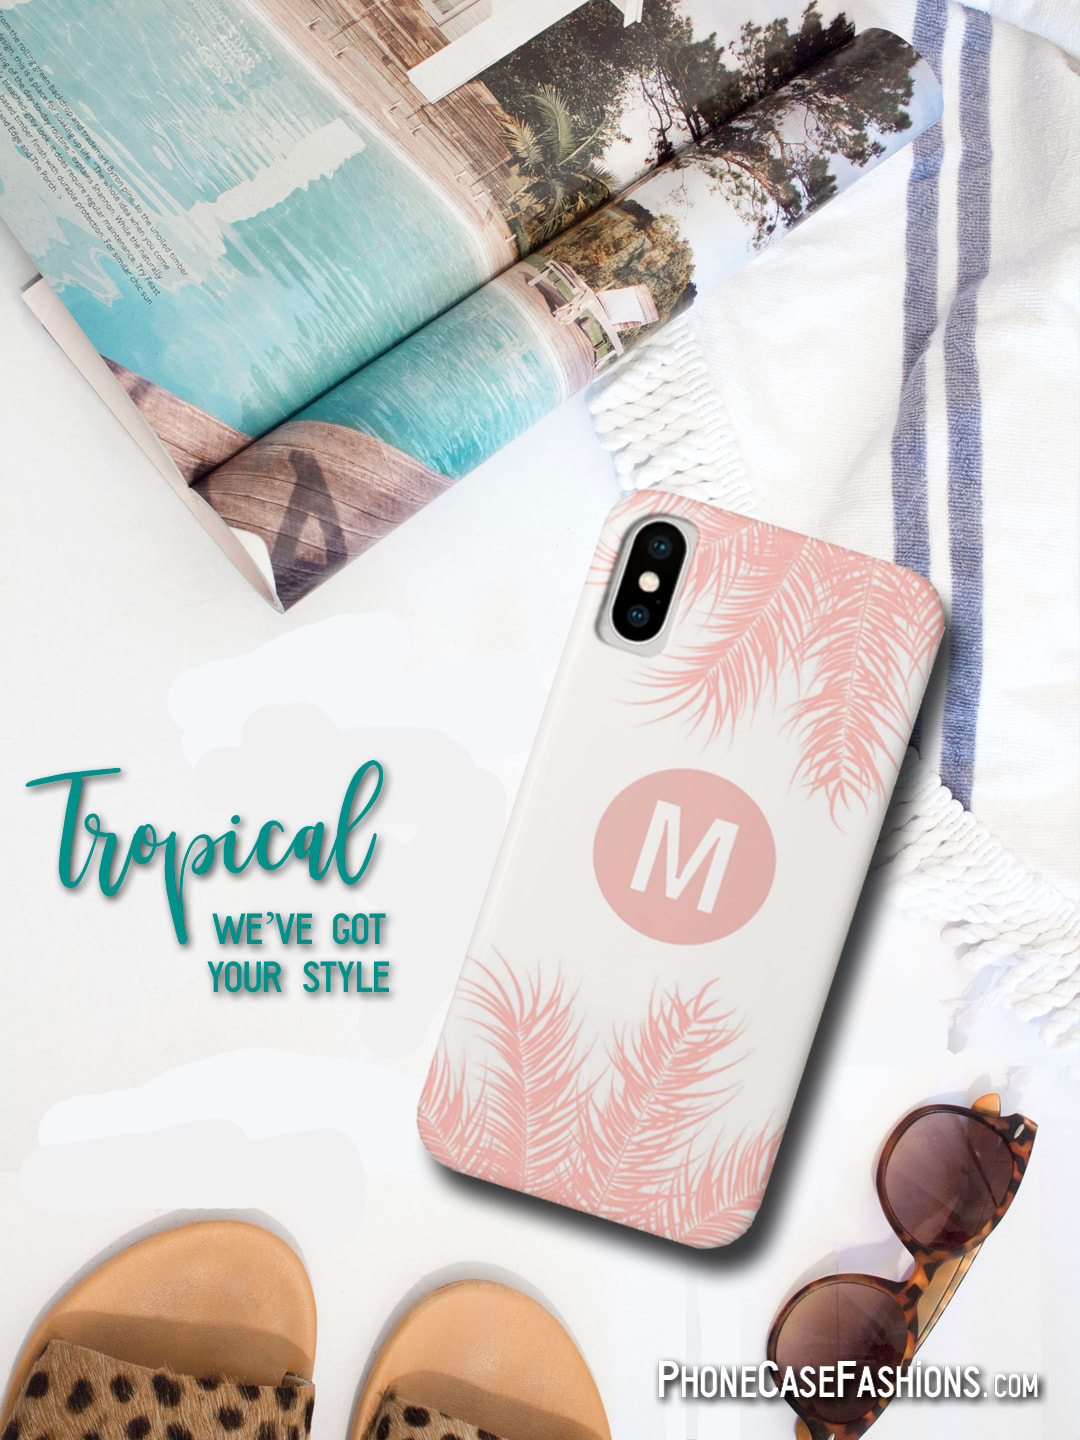 Get ready for summer vacation or just show your love of all things tropical with fabulous prints of palm trees, sunsets, flowers and animal prints. Customize with an initial, name, monogram, a saying. Don't hide behind an ugly case, we've got you covered. Shop PhoneCaseFashions.com